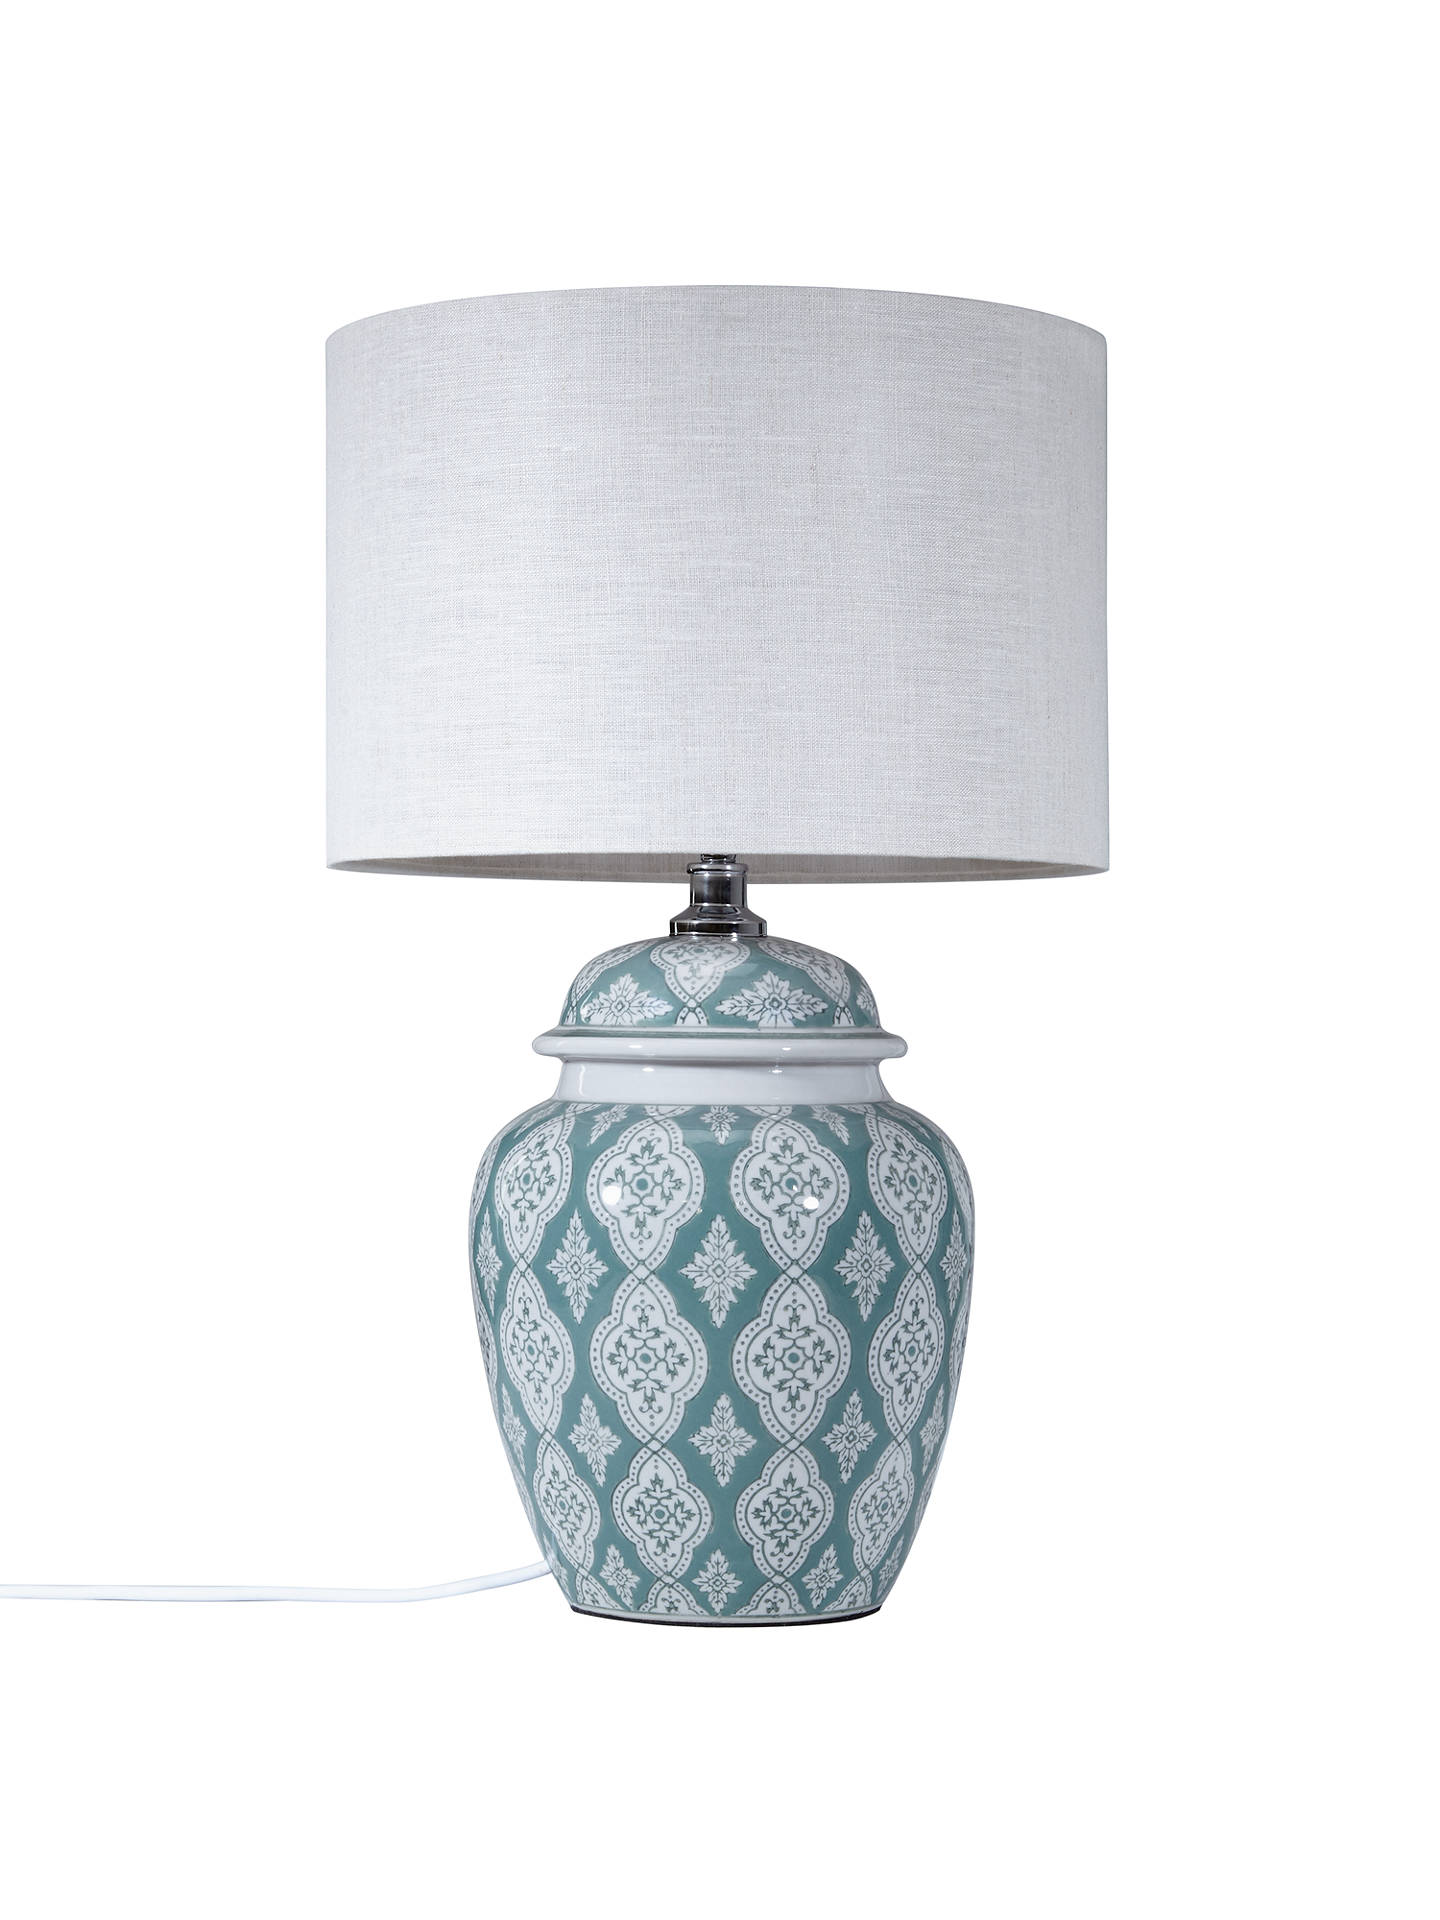 BuyJohn Lewis & Partners Tamsin Ceramic Lamp Base, Green Online at johnlewis.com